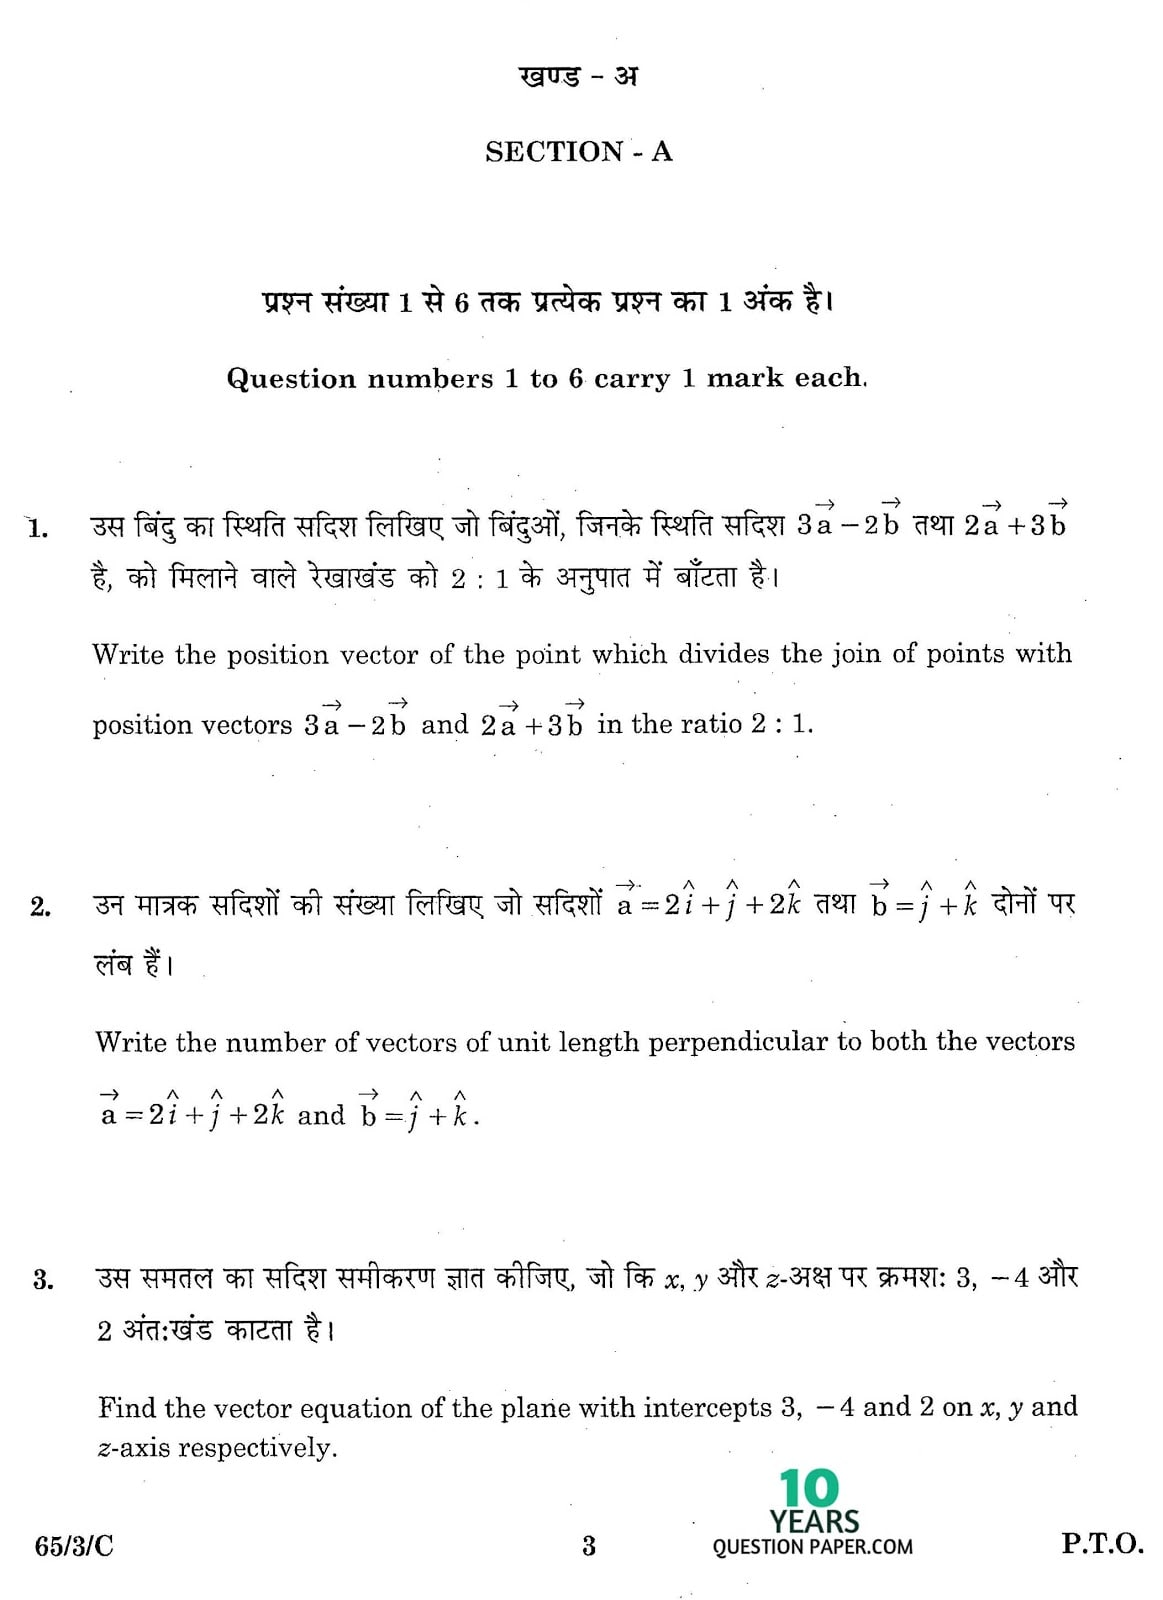 CBSE Class 12 Mathematics 2016 SET-3 Question Paper